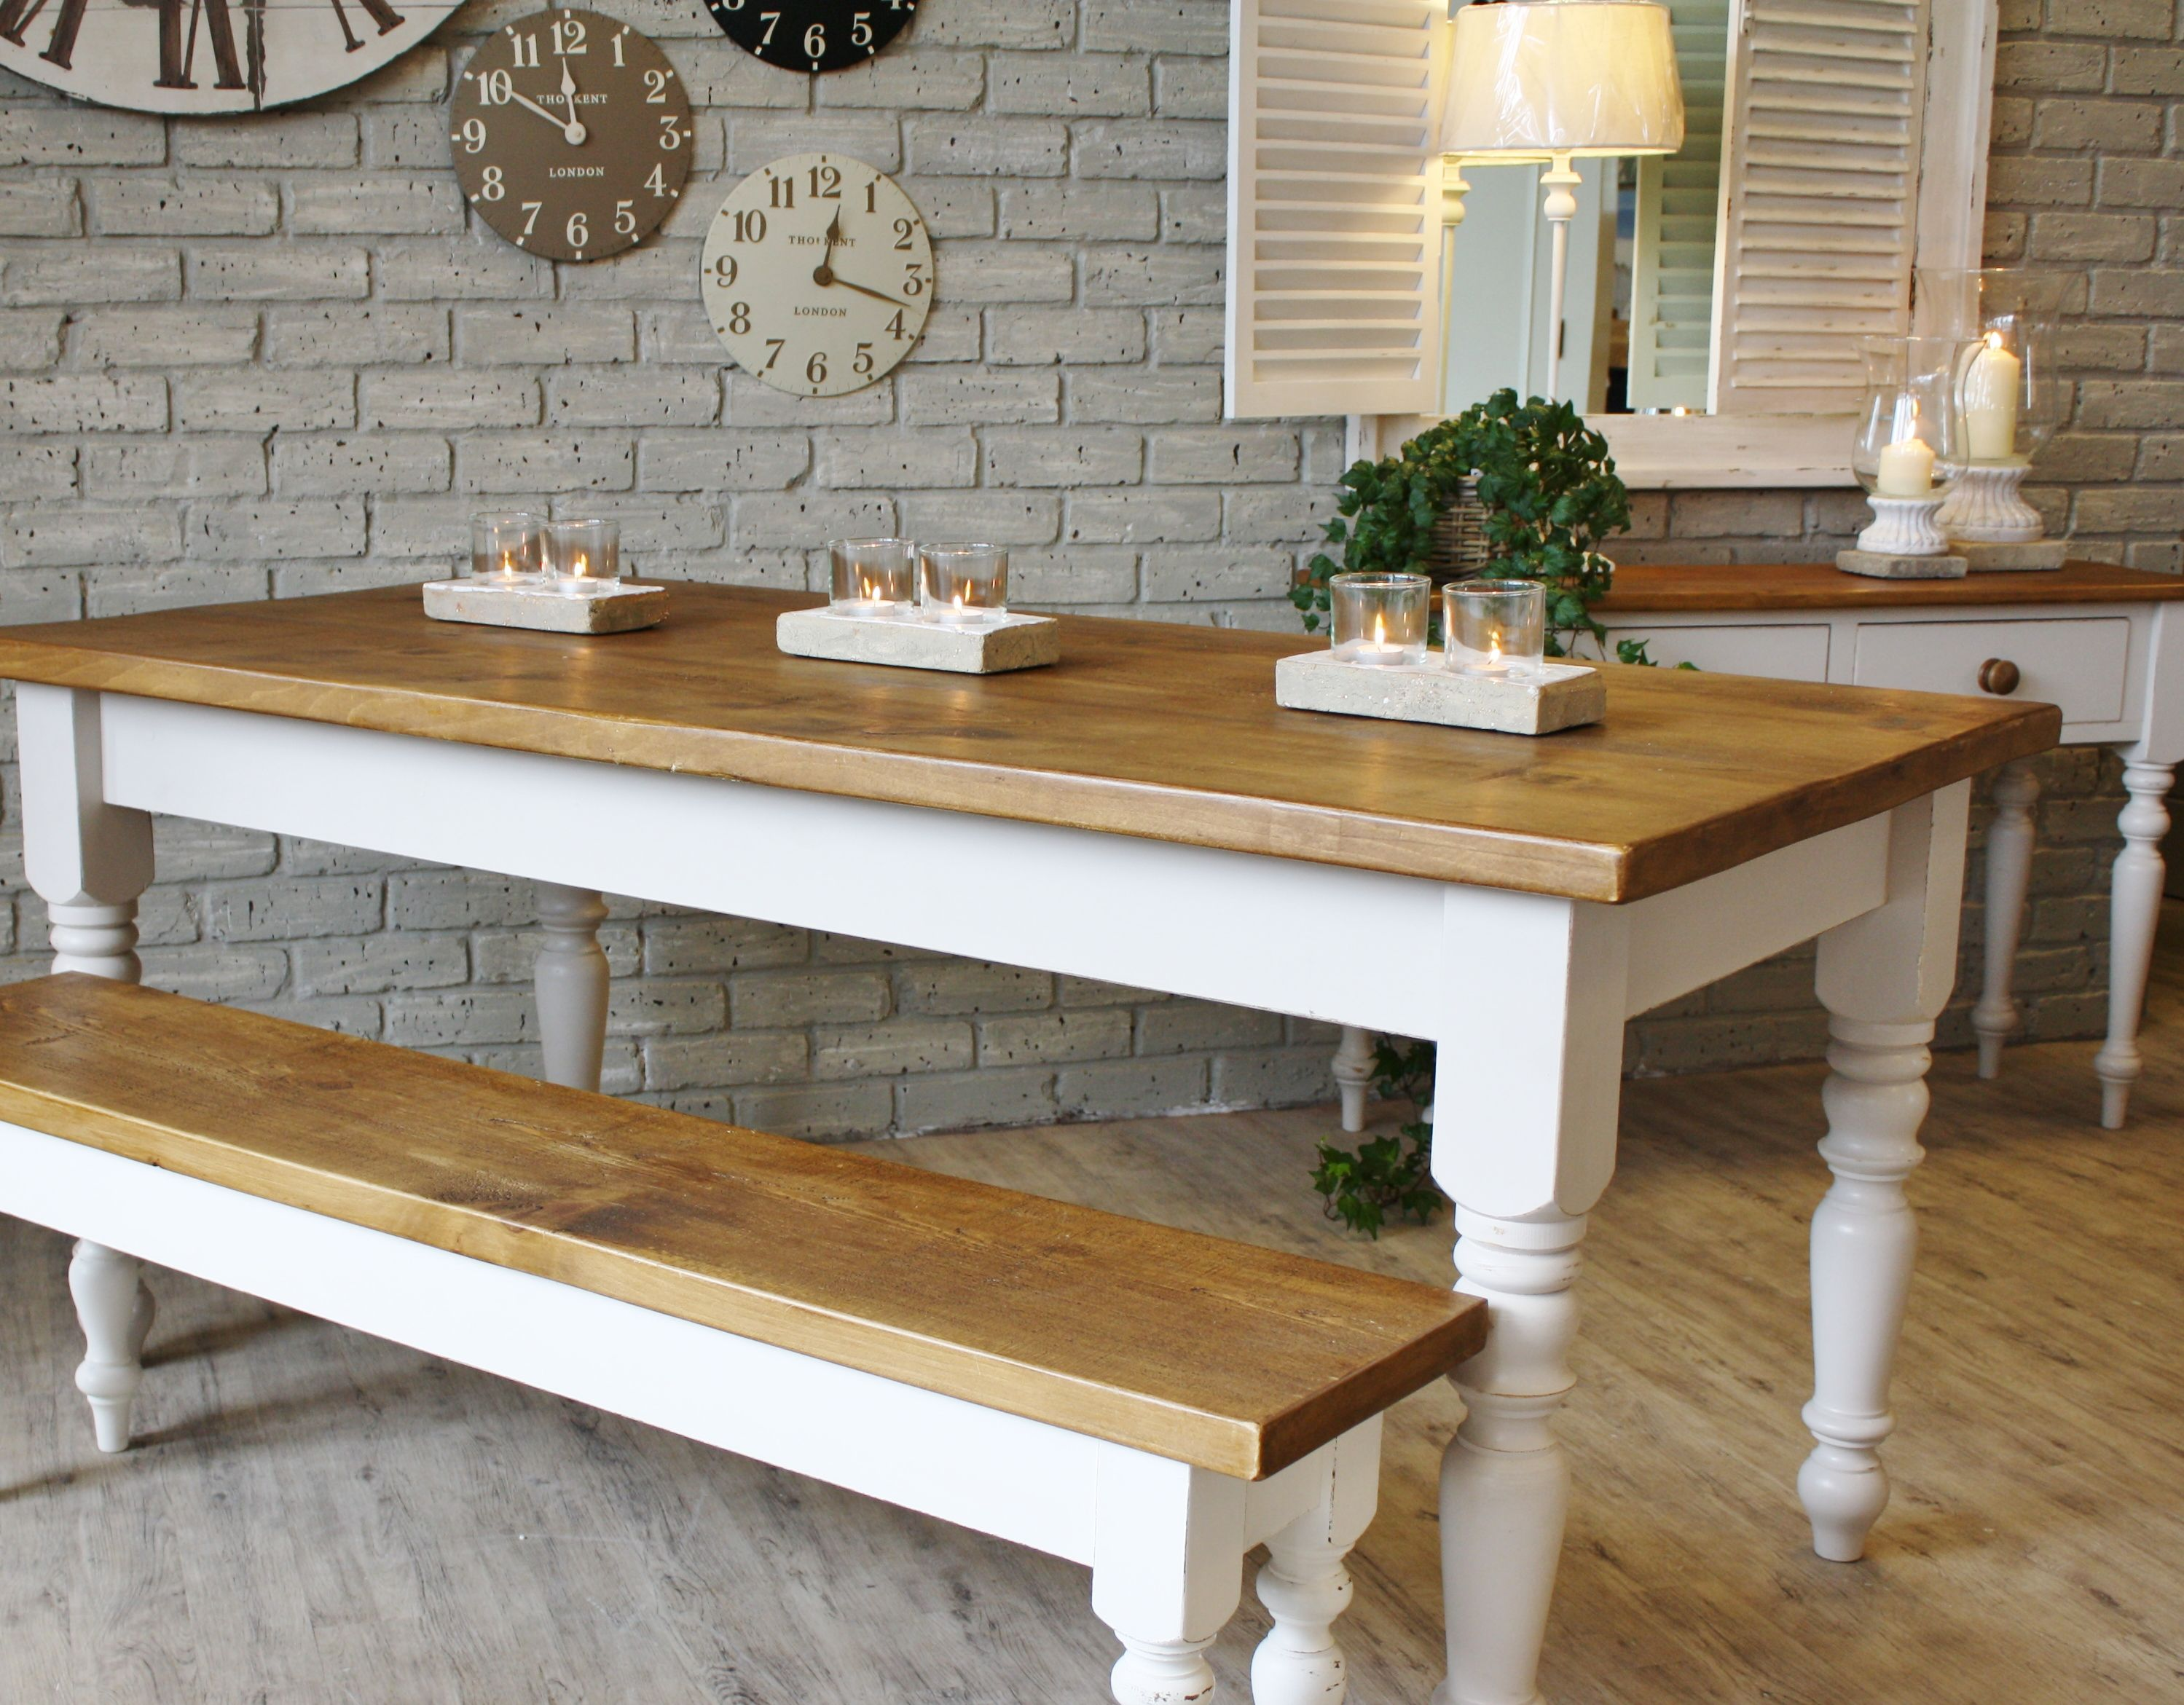 kitchen table with benches white and cream farmhouse White Cream Farmhouse Wooden Kitchen Tables with Candle Holders